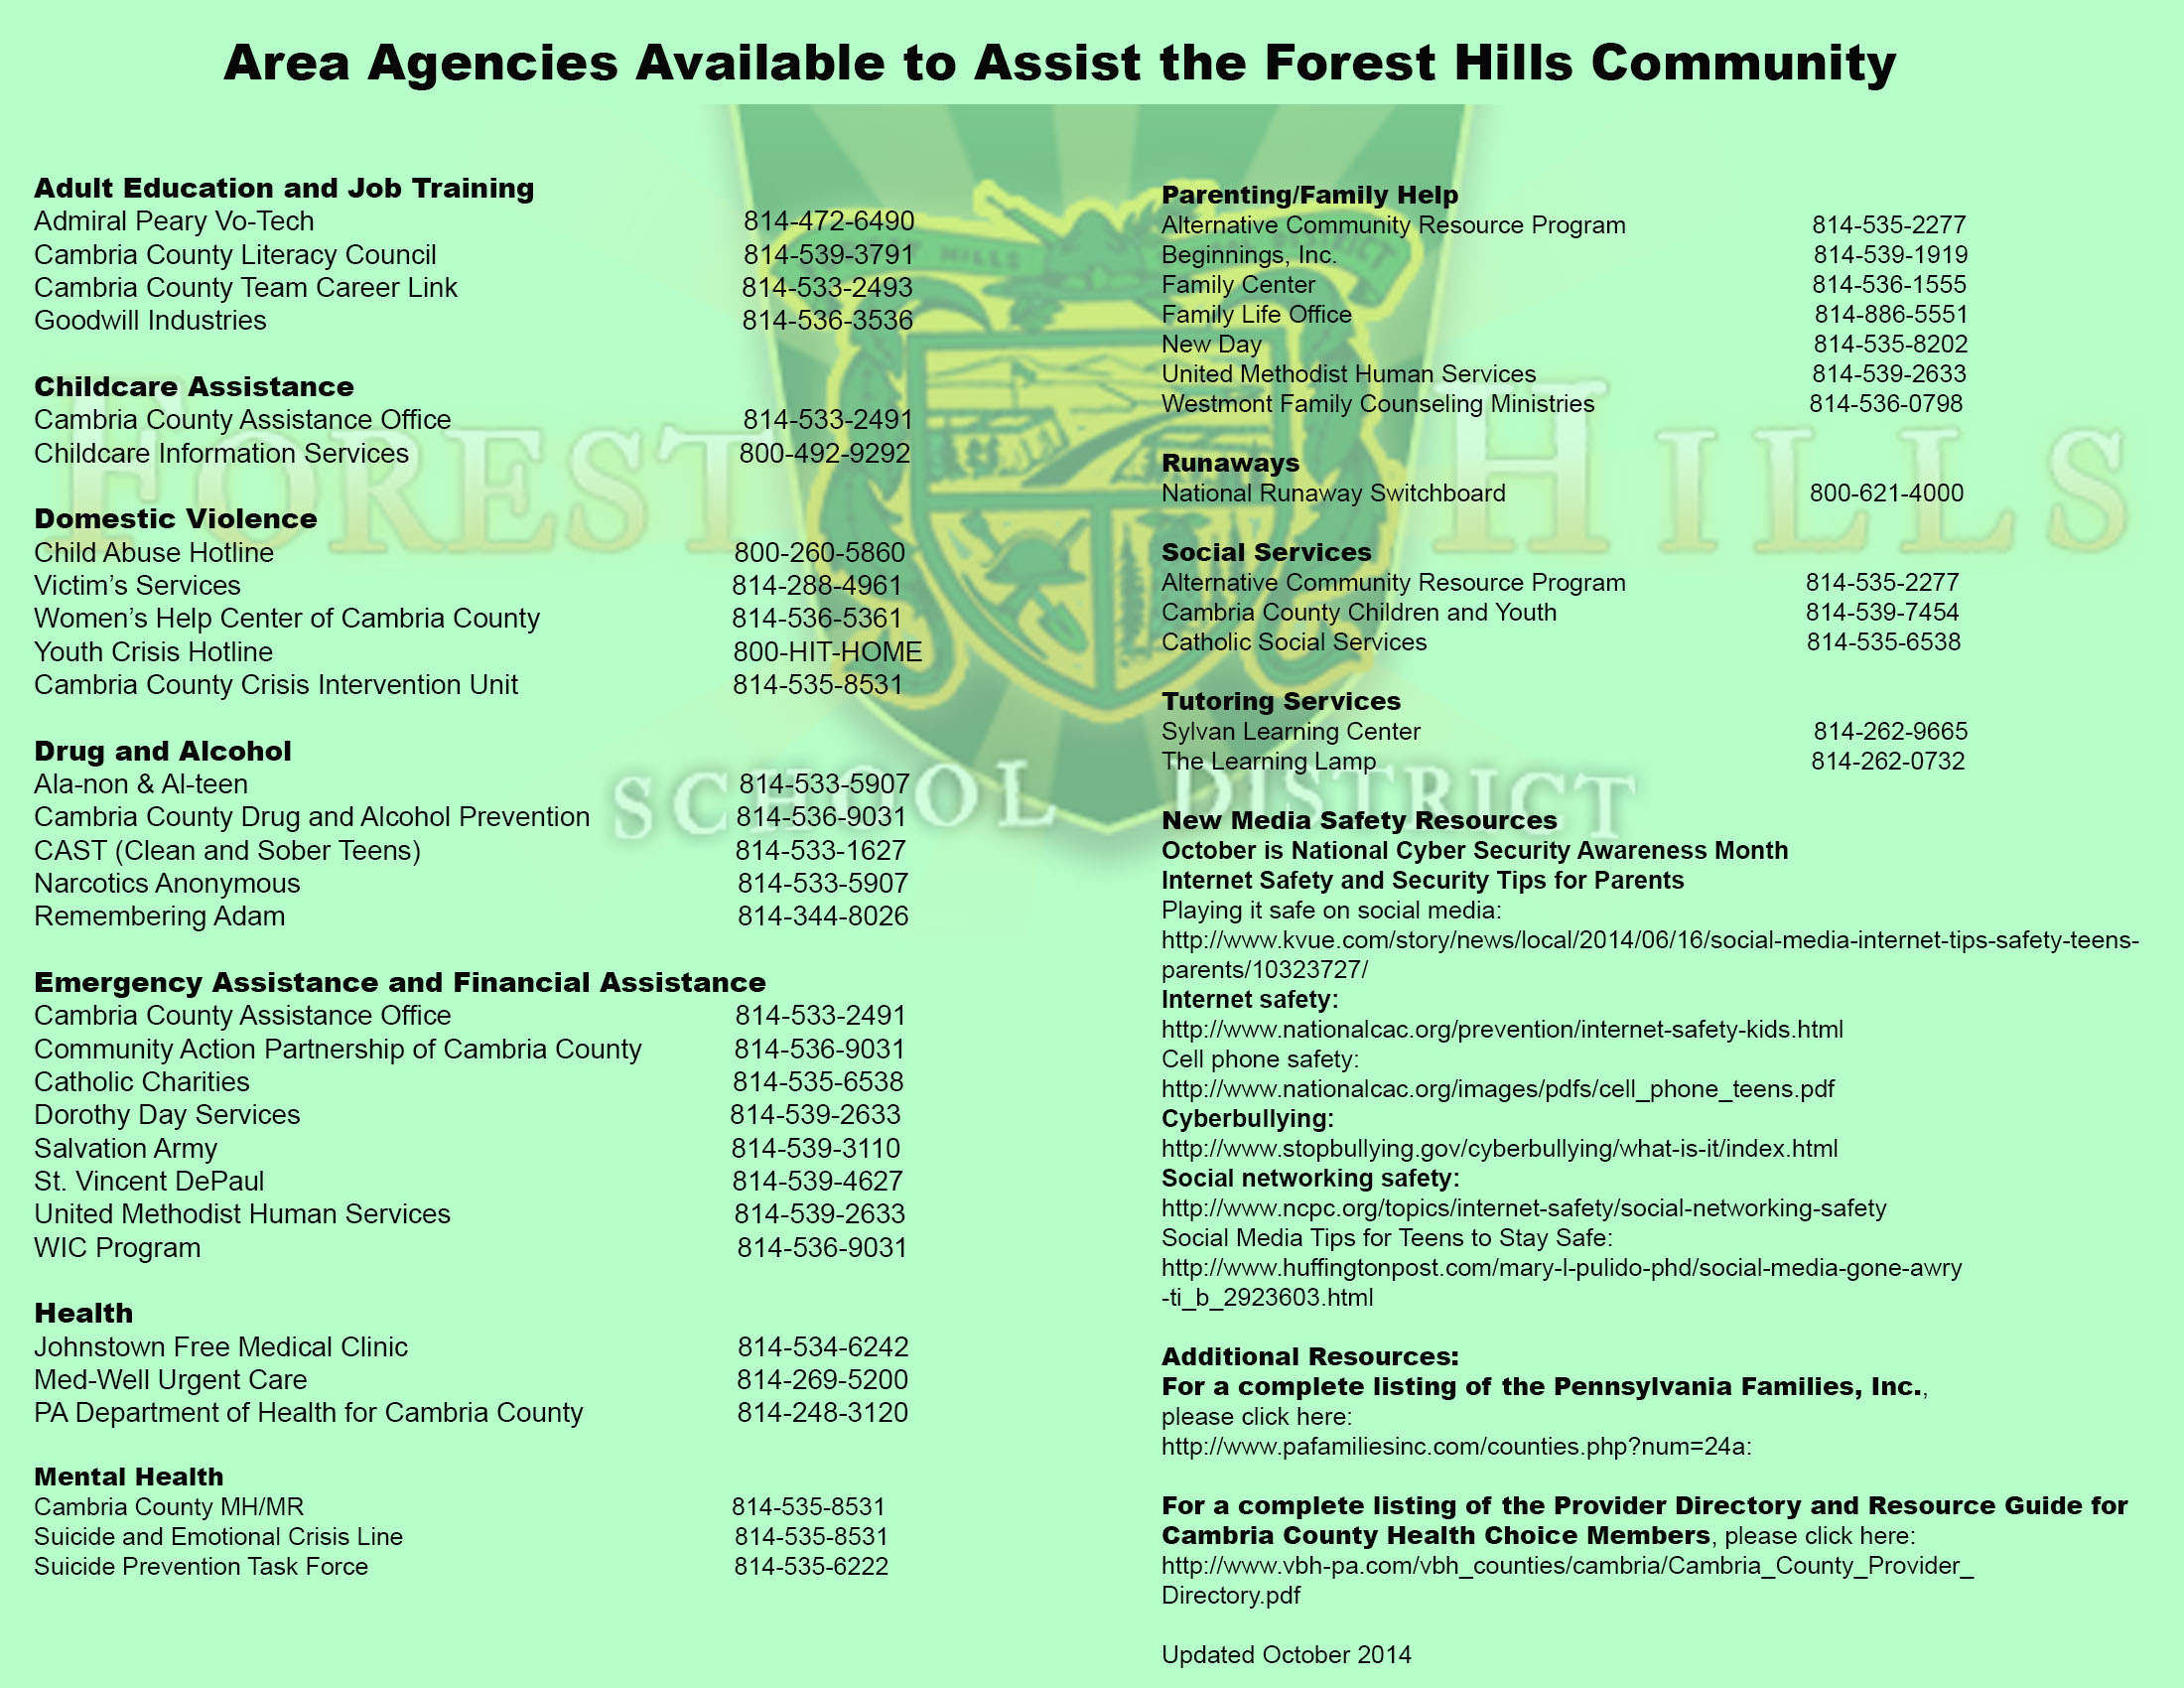 Forest hills adult community education